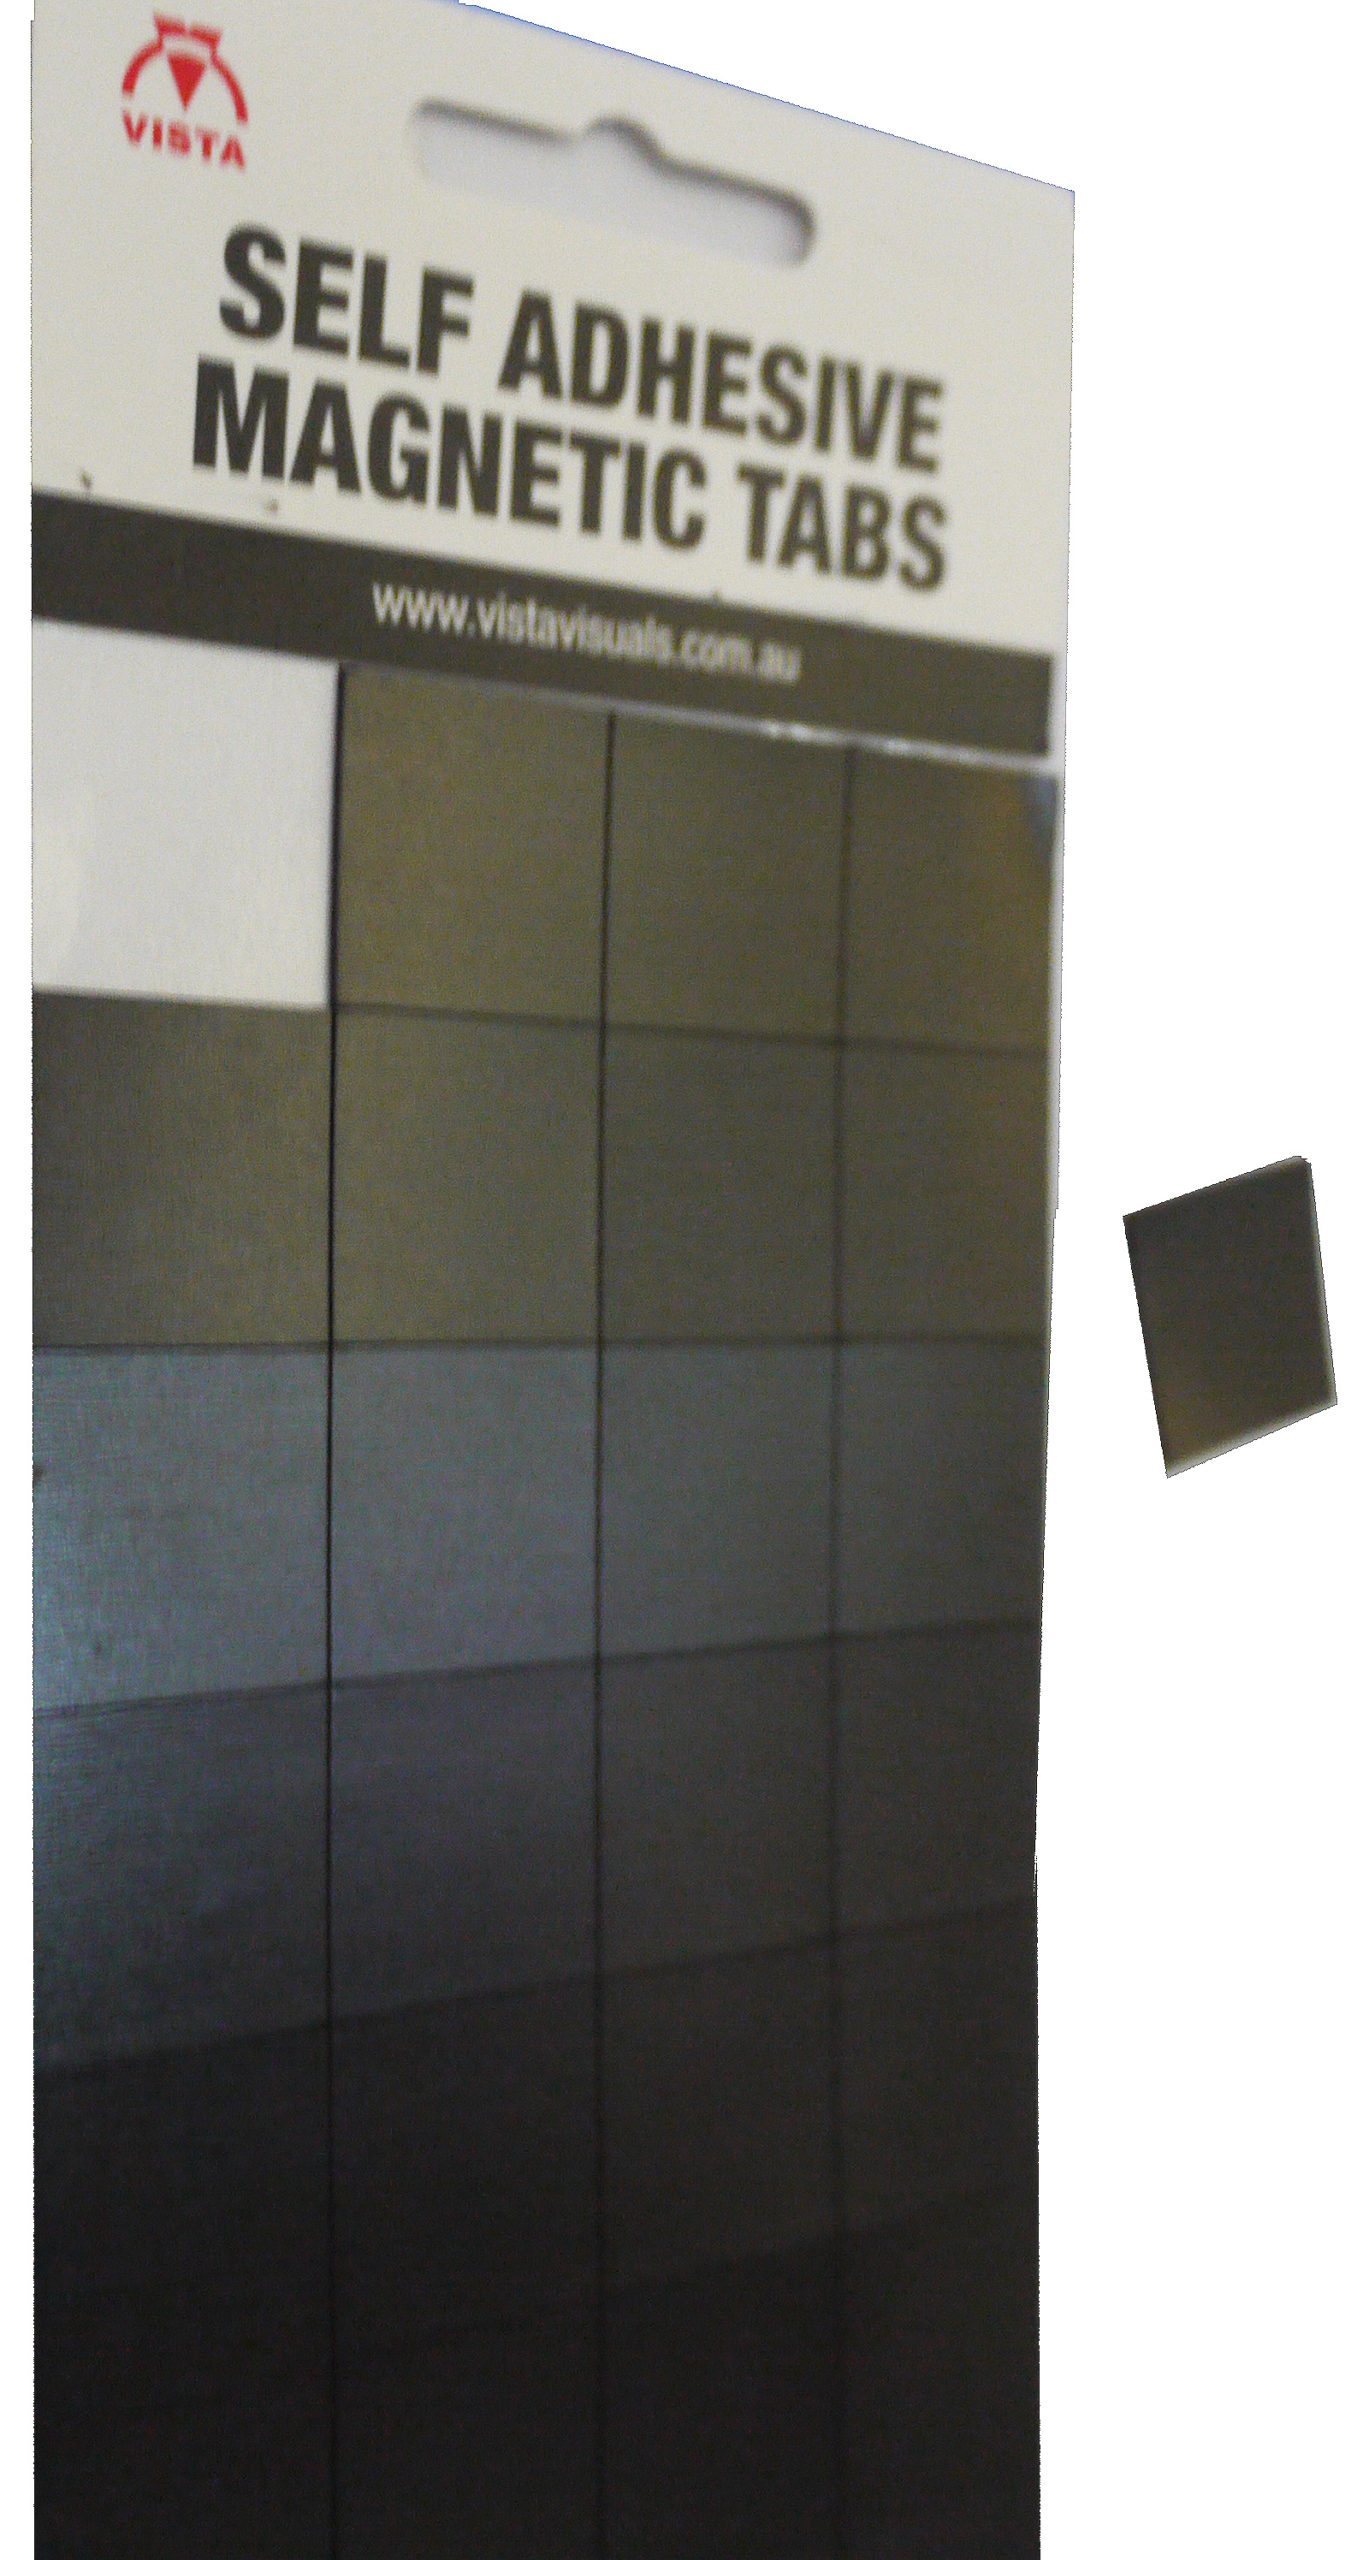 Magnetic Tabs